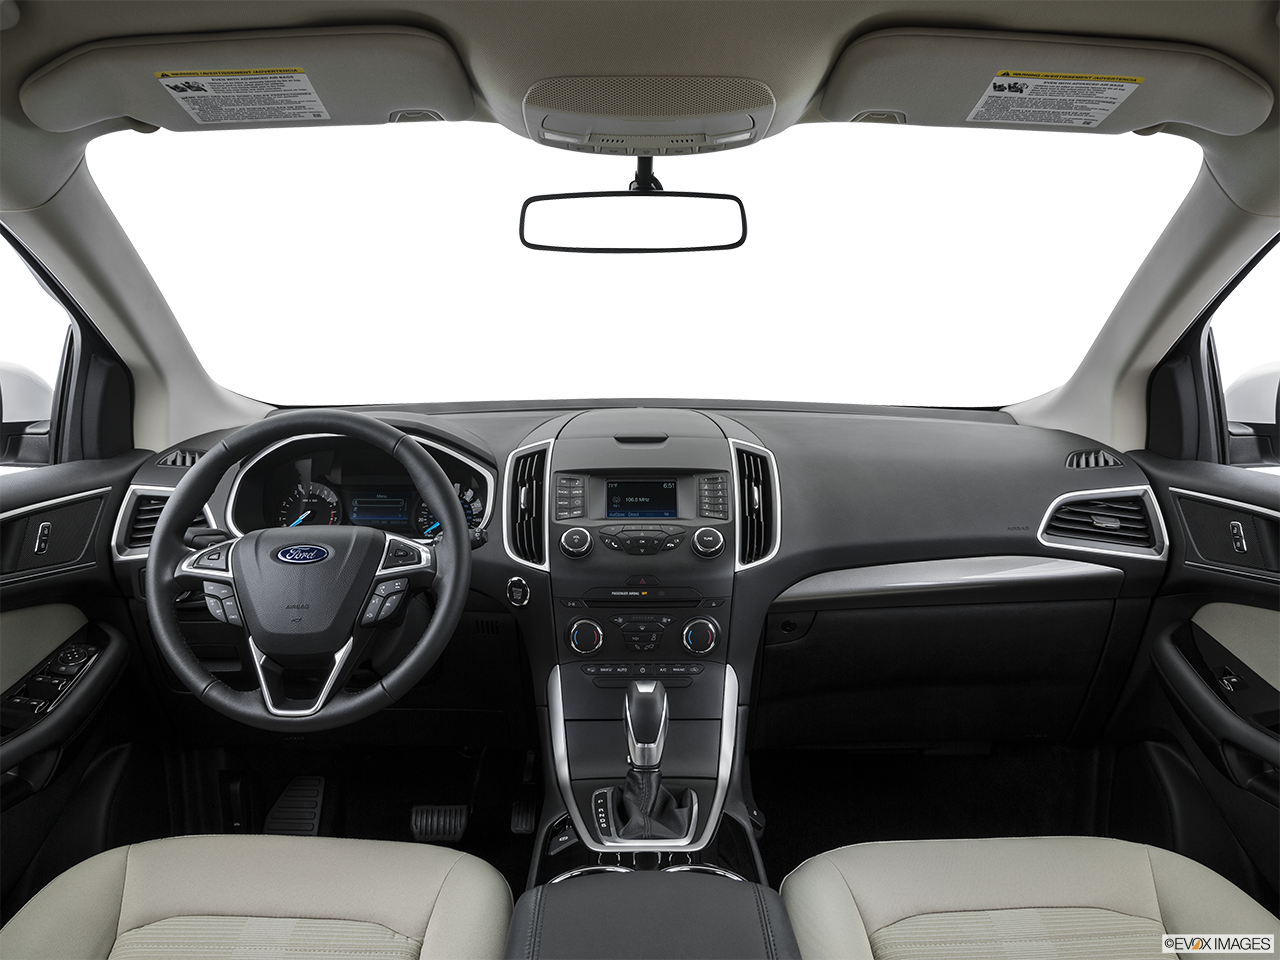 amazing-design-of-the-grey-seats-ideas-with-black-dash-and-black-steering-wheel-as-the-ford-edge-2016-interior